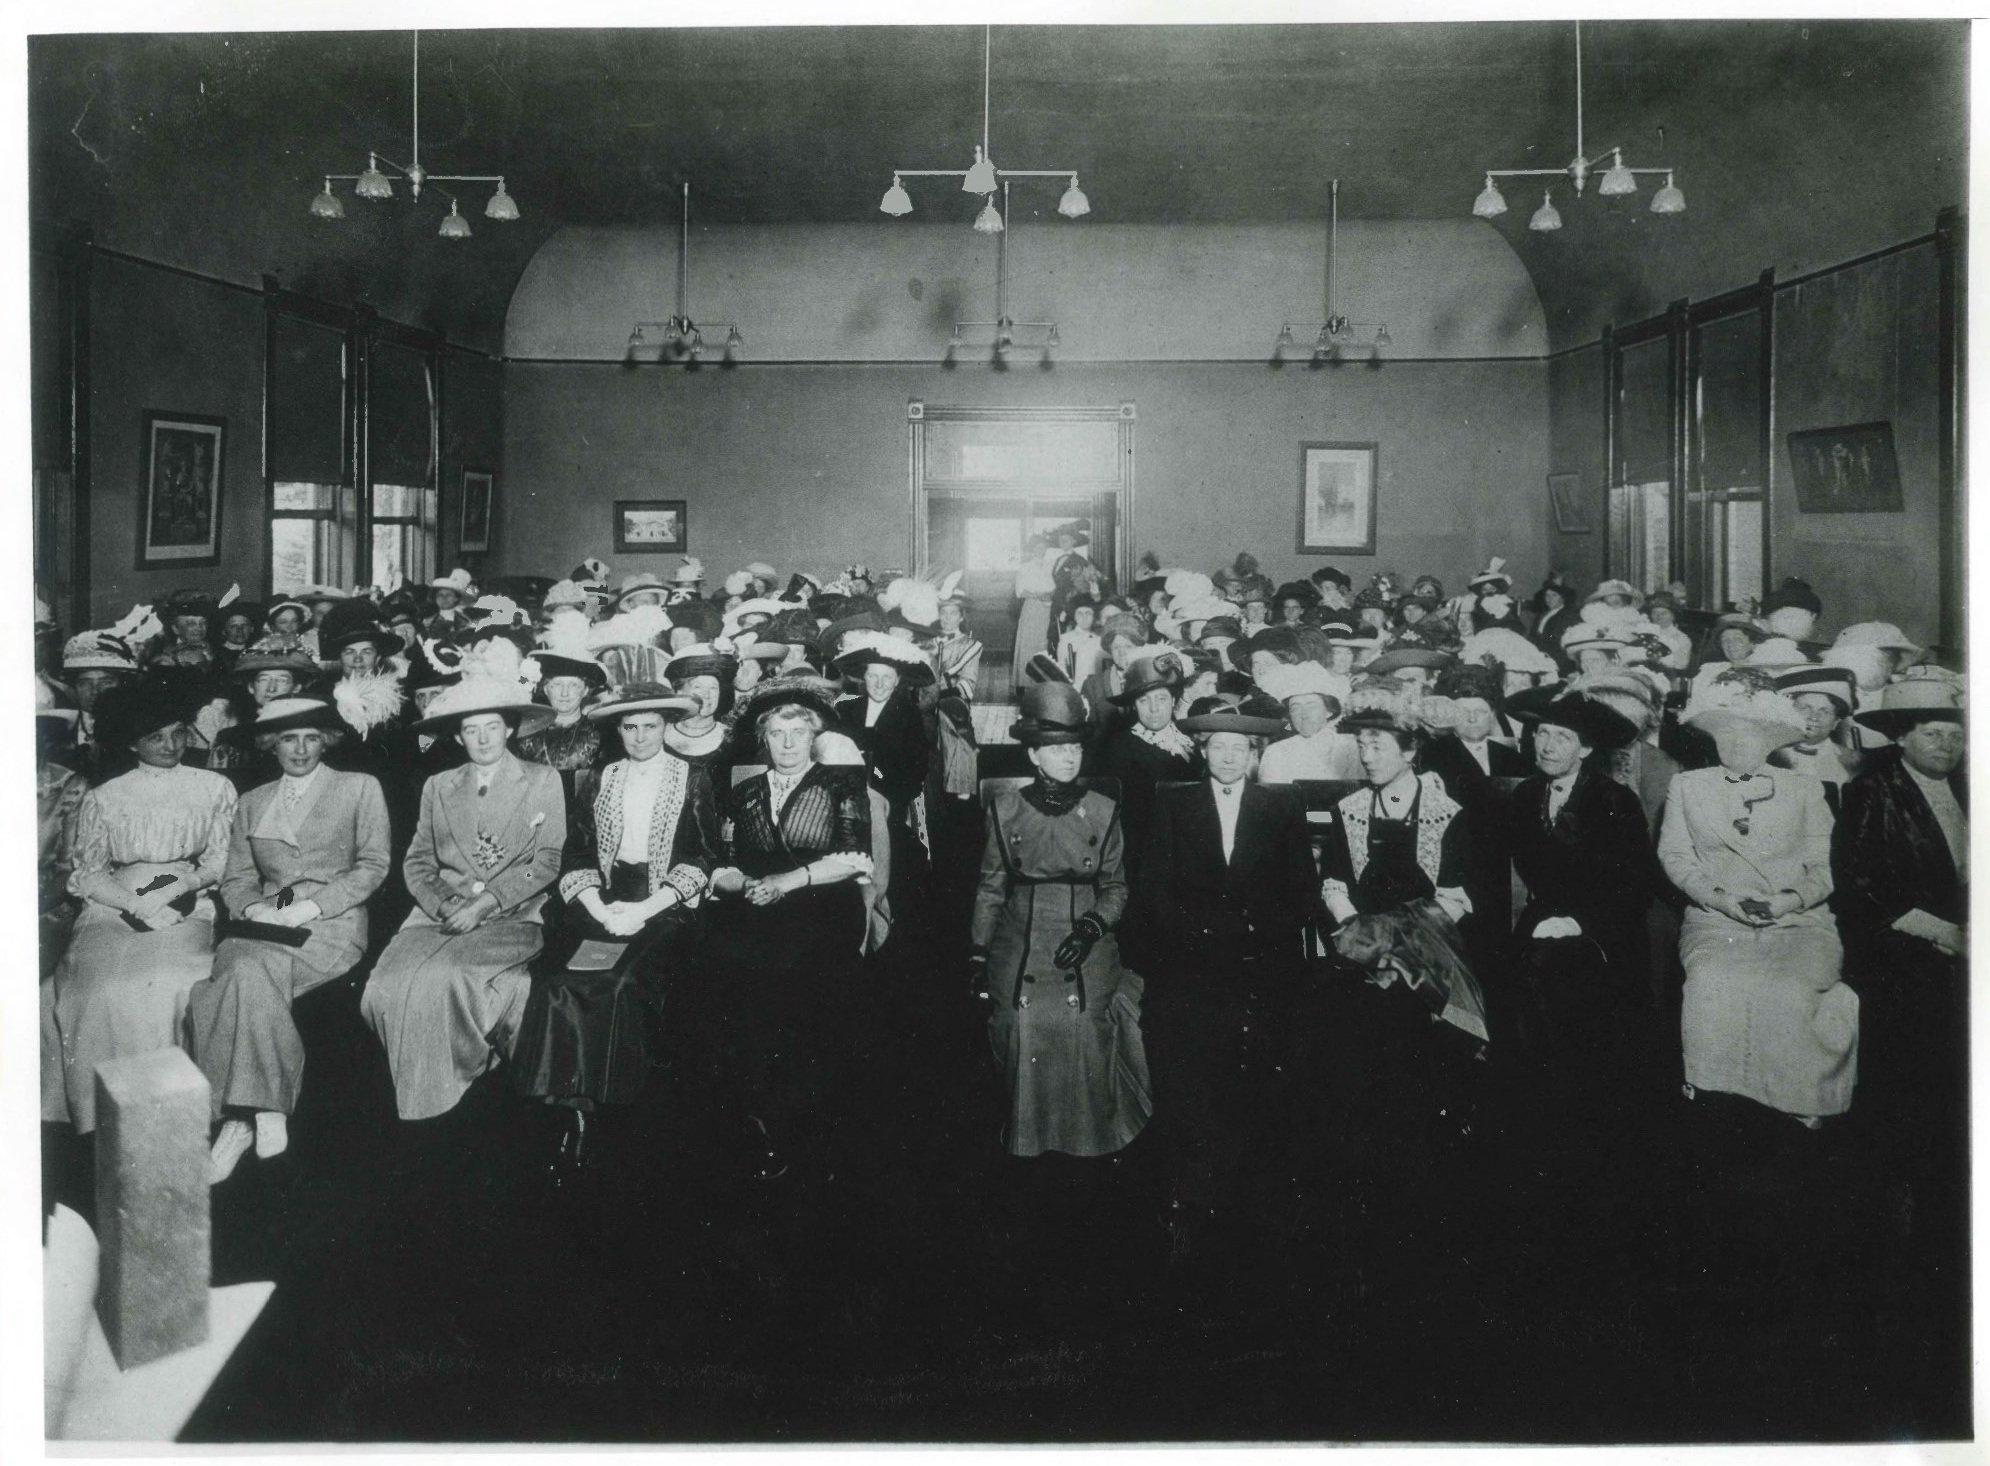 1910: Only known photograph of a general club meeting, taken in their first club house at 50 S 300 E. This building was sold to purchase the land for their new club house at 850 E South Temple. Image courtesy of Utah State Historical Society